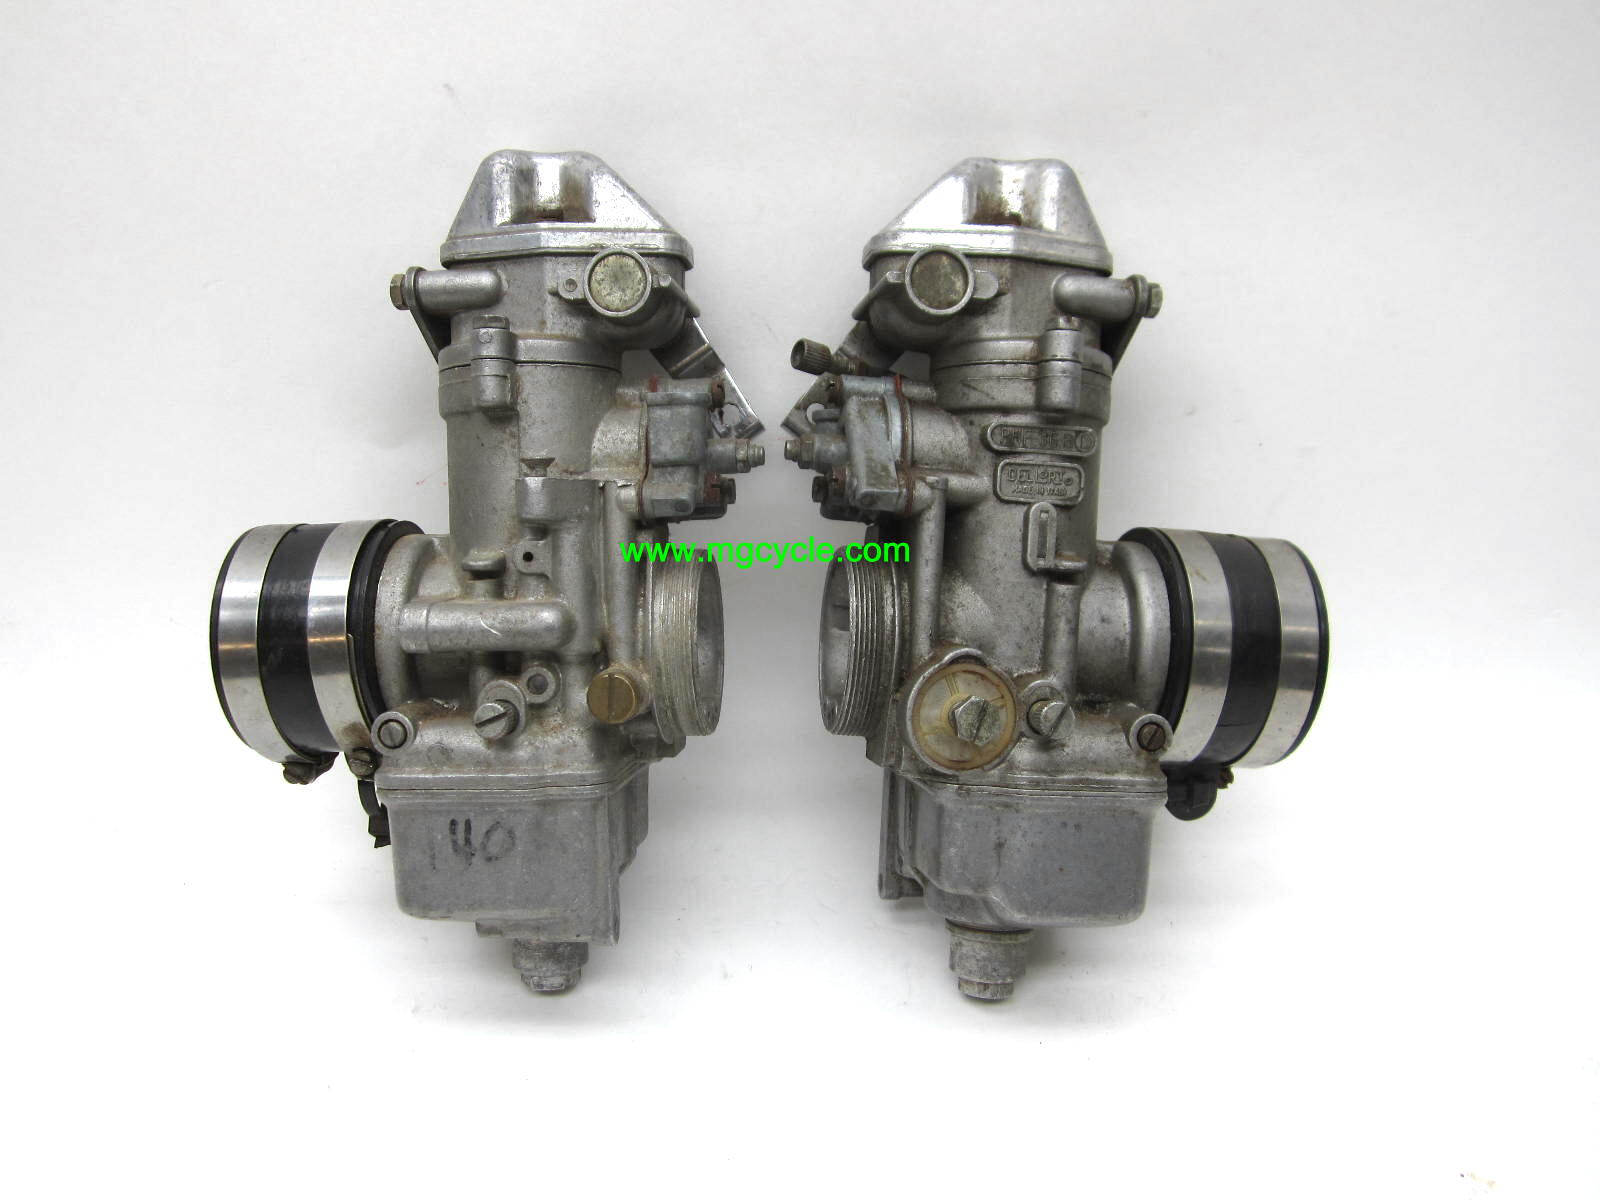 USED PAIR: Dellorto PHF36BD PHF36BS carburetors OEM LeMans 850